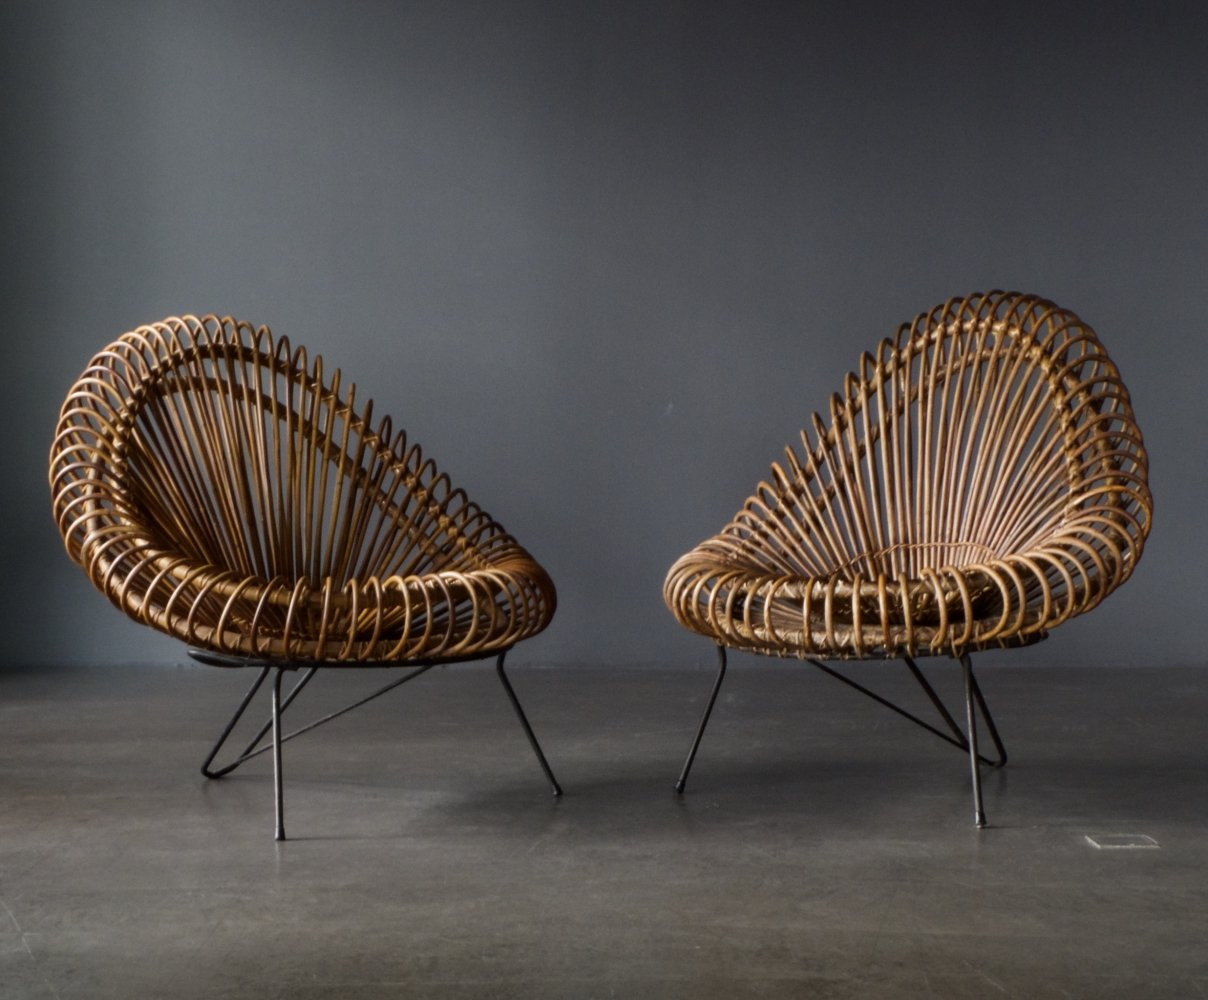 Pair of Basketware Lounge Chairs by Janine Abraham & Dirk Jan Rol for Rougier, 1950s